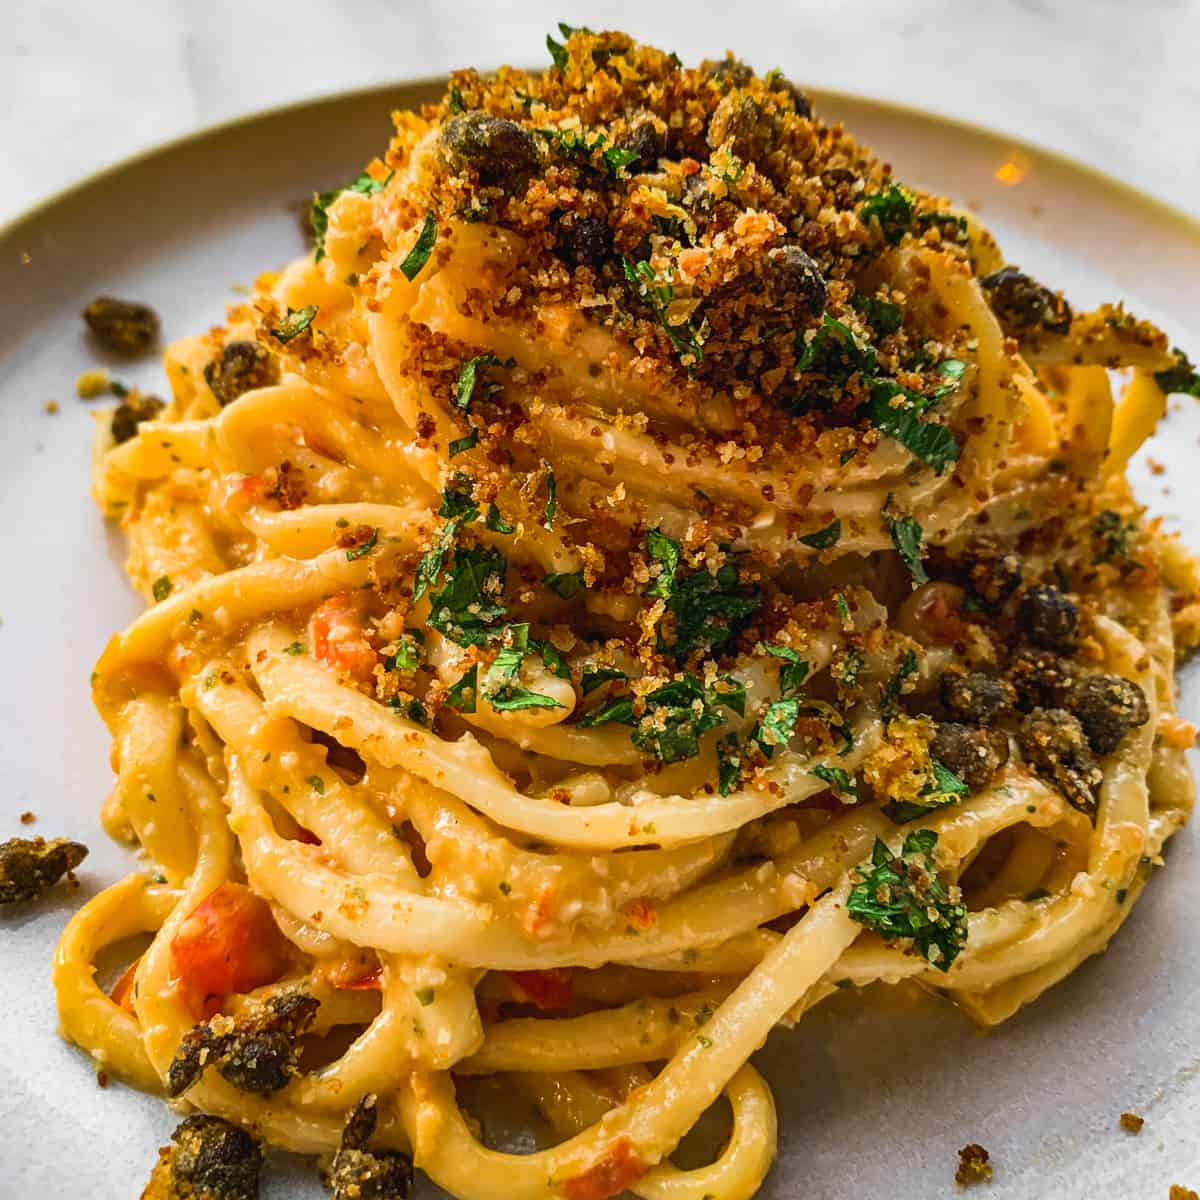 Linguine pasta with Sicilian pesto and fried capers on top